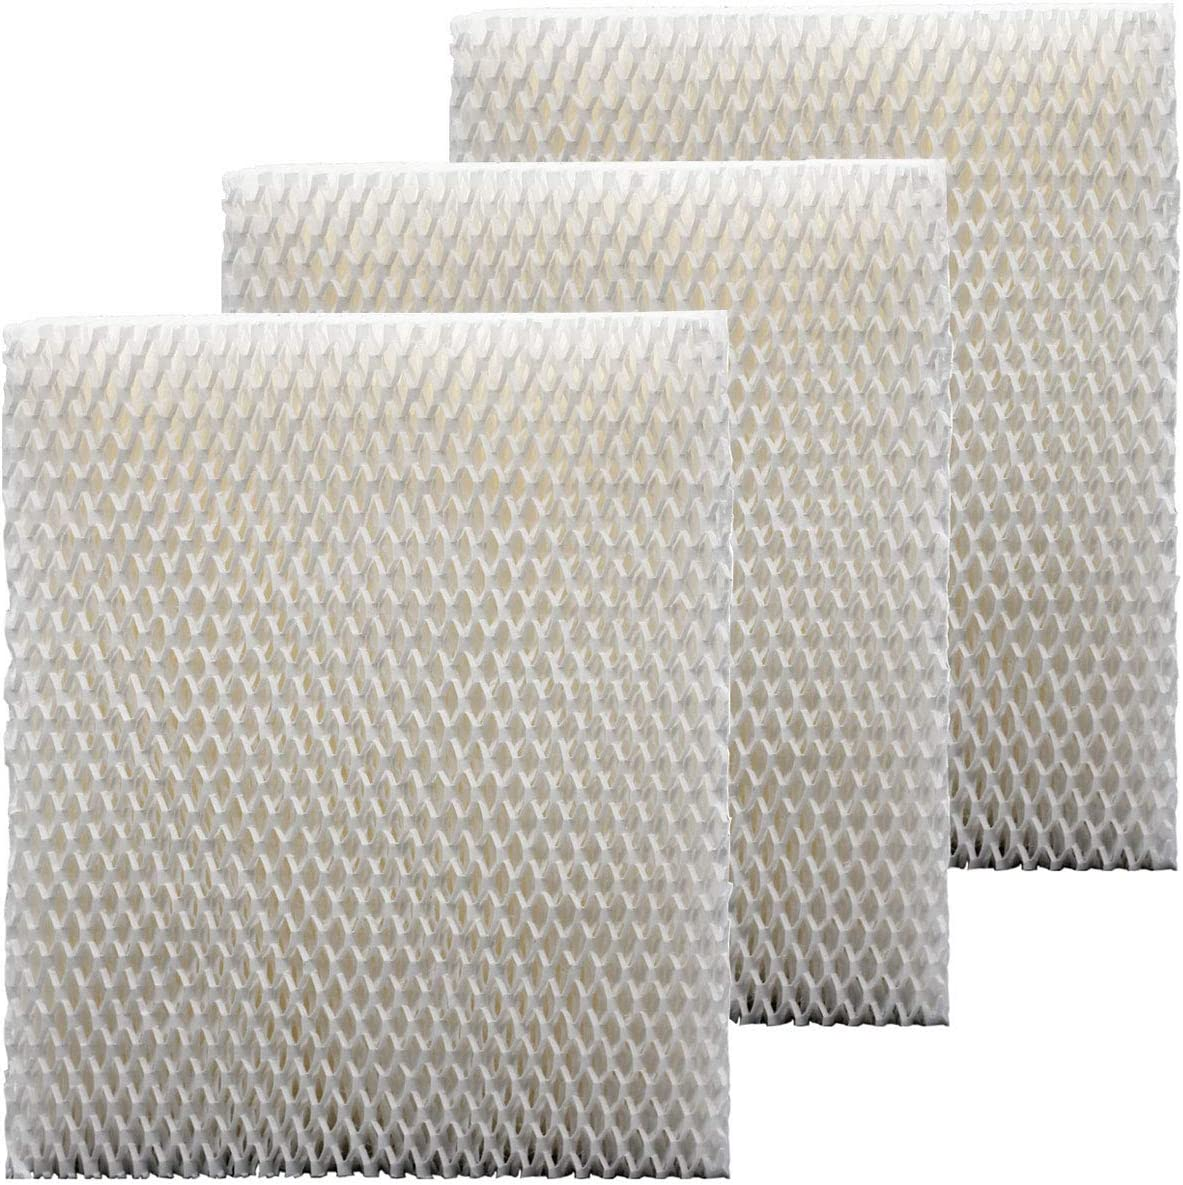 Colorfullife 3 Pack Humidifier Filter for Honeywell Humidifier HEV615 and HEV620, Replacements Wicking Filter T